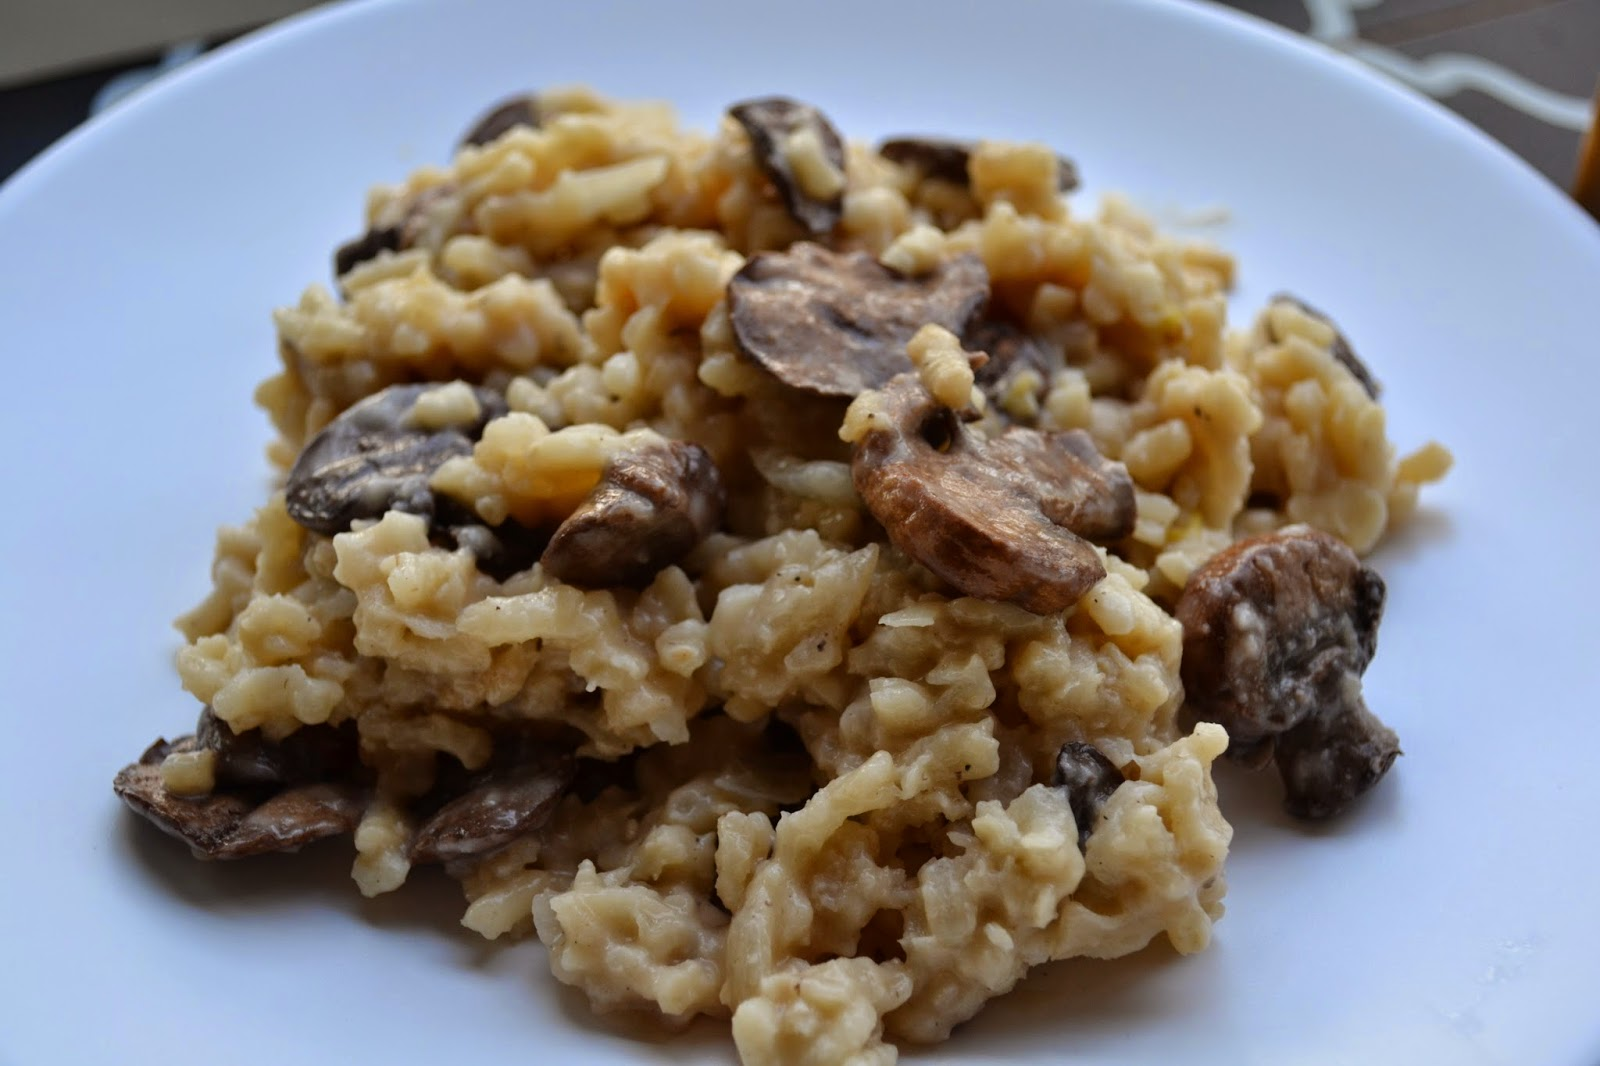 Mushroom Risotto For Under 3 Recipes — Dishmaps